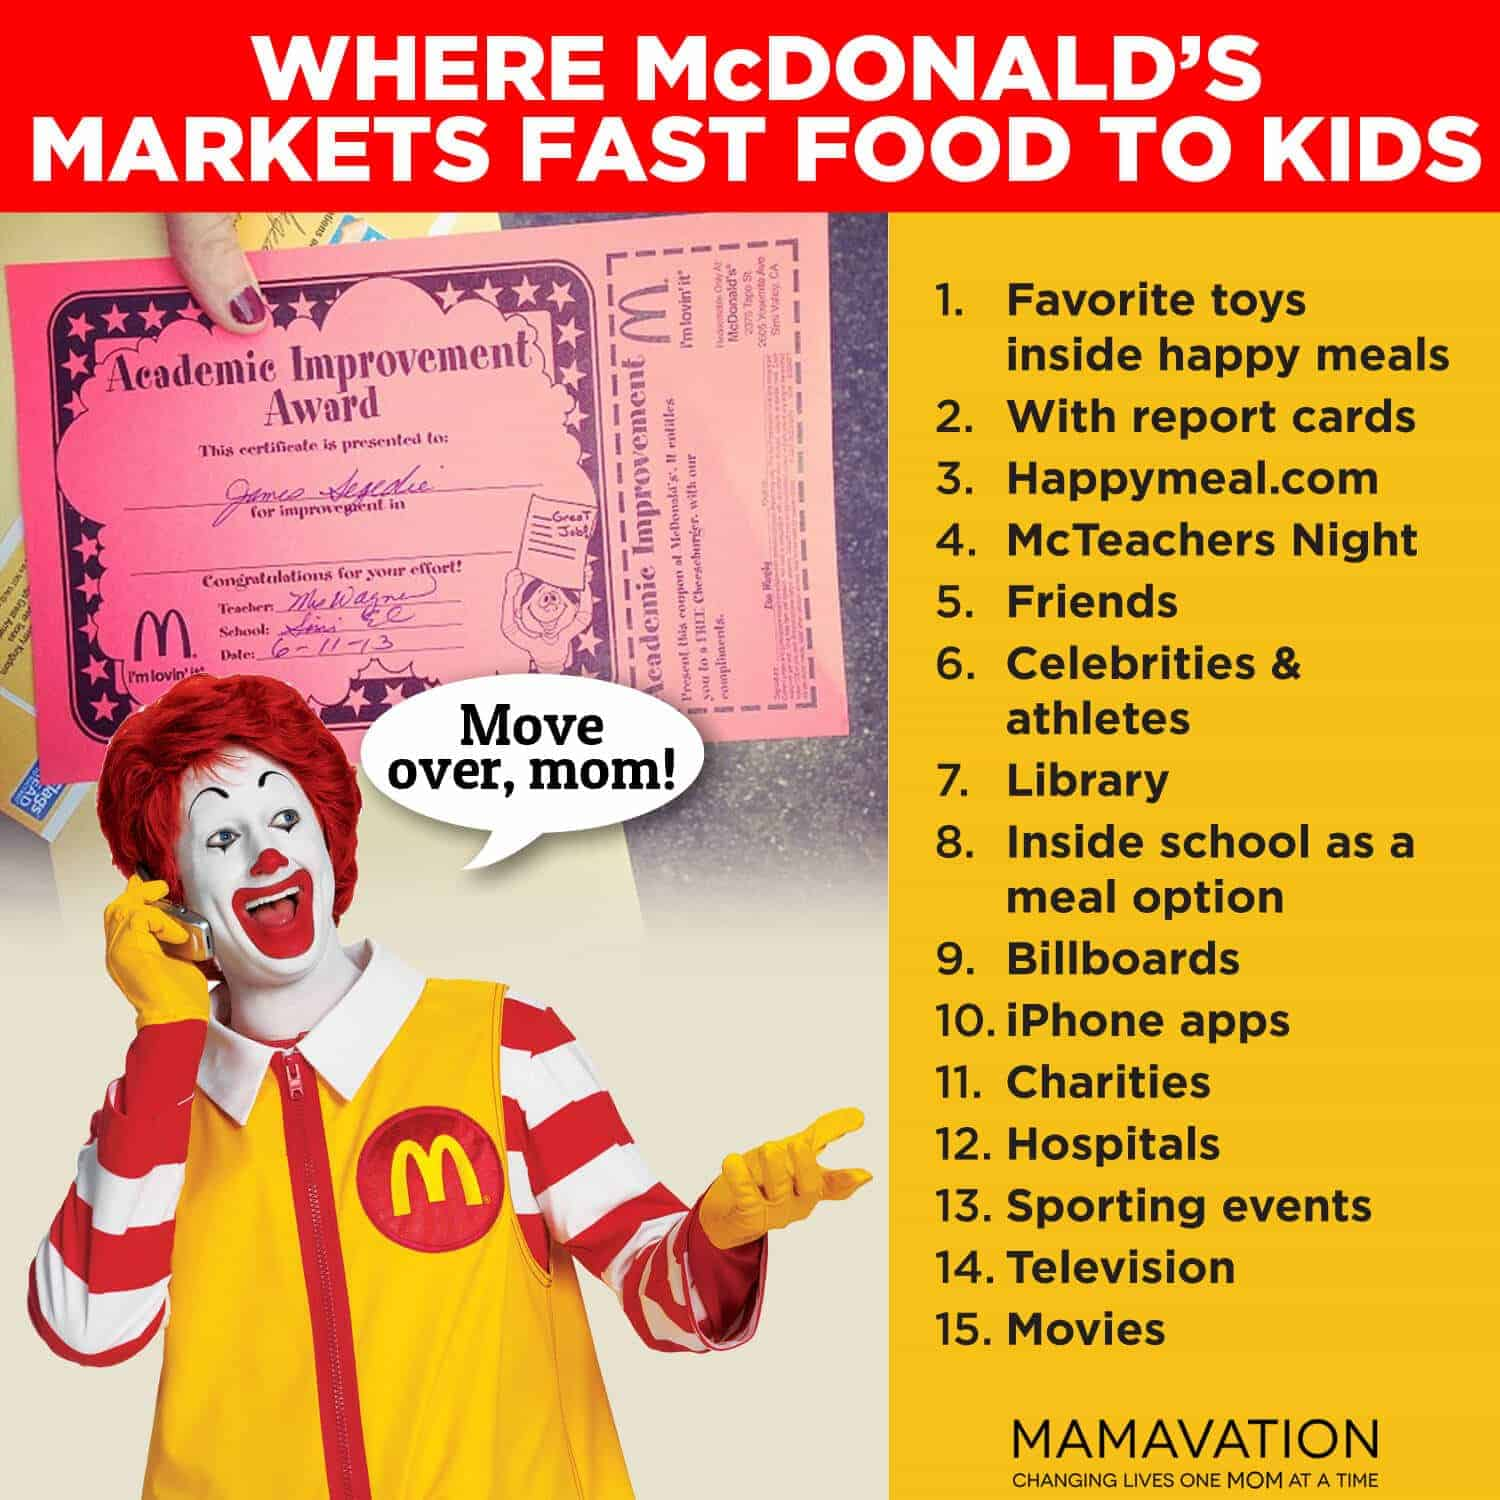 MV_McDonaldsFastFoodMarketing_outrage